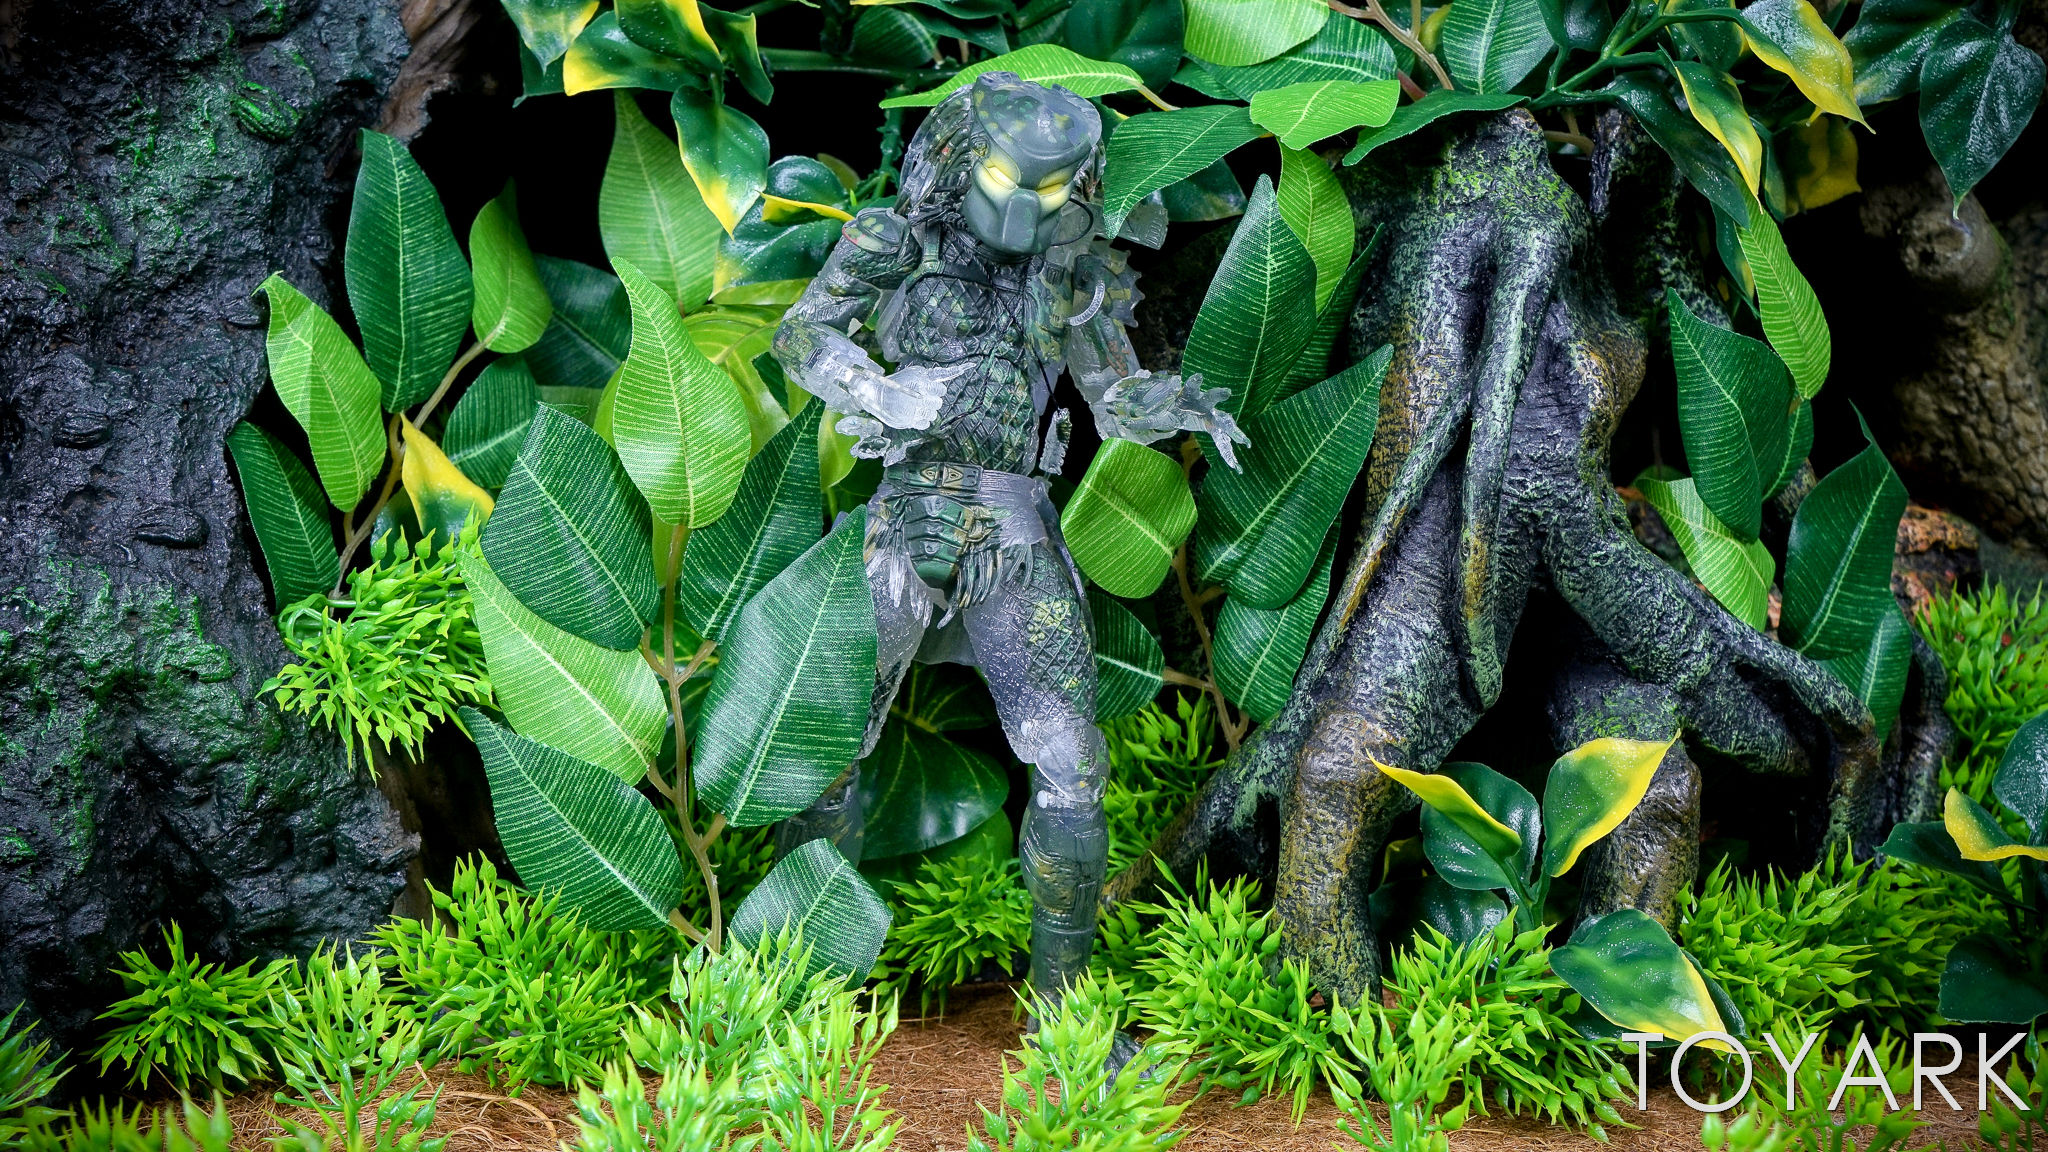 http://news.toyark.com/wp-content/uploads/sites/4/2017/03/NECA-Jungle-Demon-Predator-023.jpg